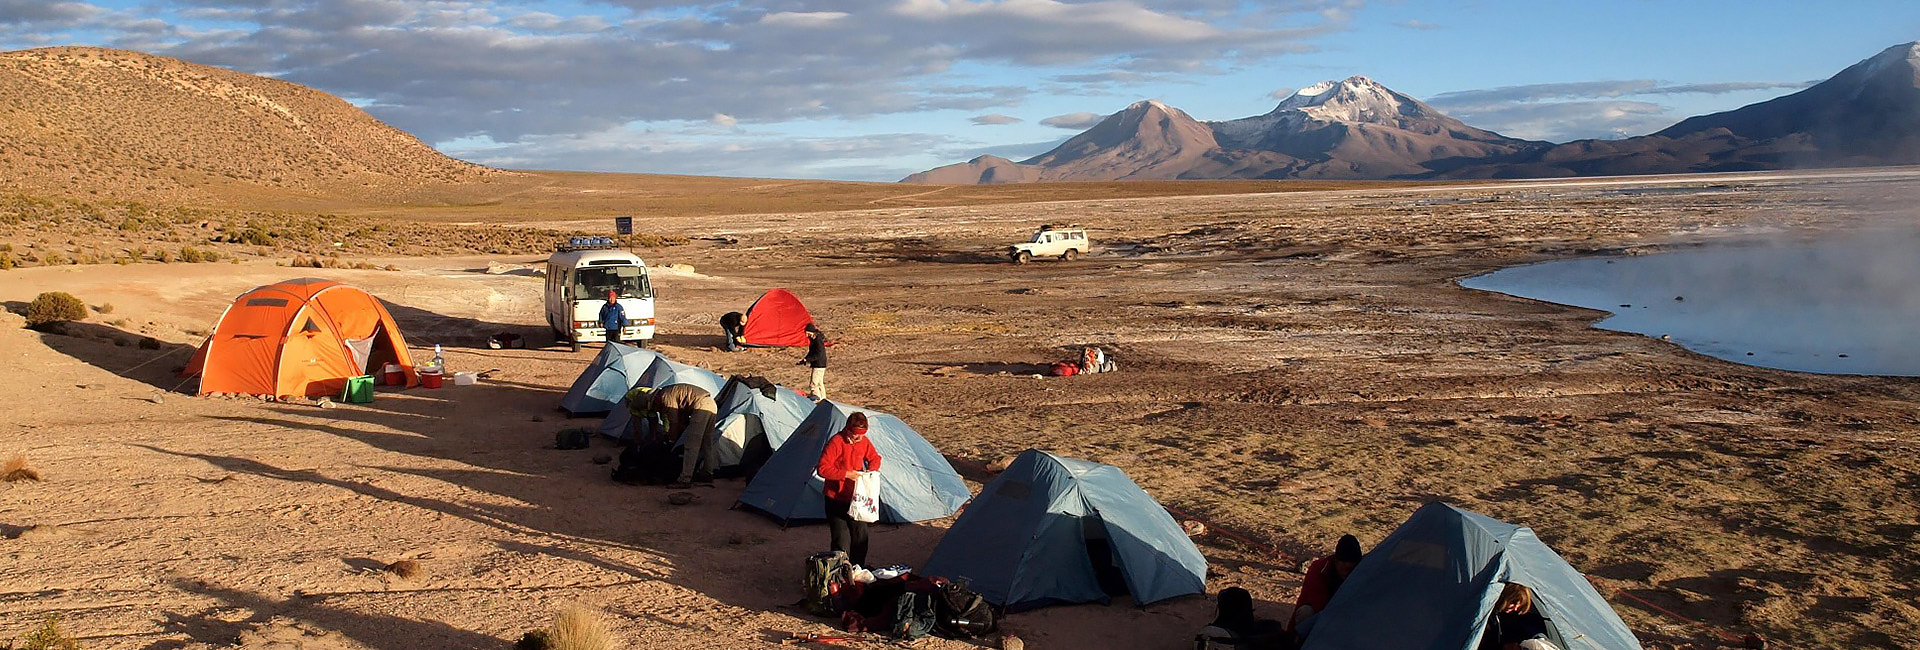 Camp at Salar de Surire, Chilean Andes, Altiplano